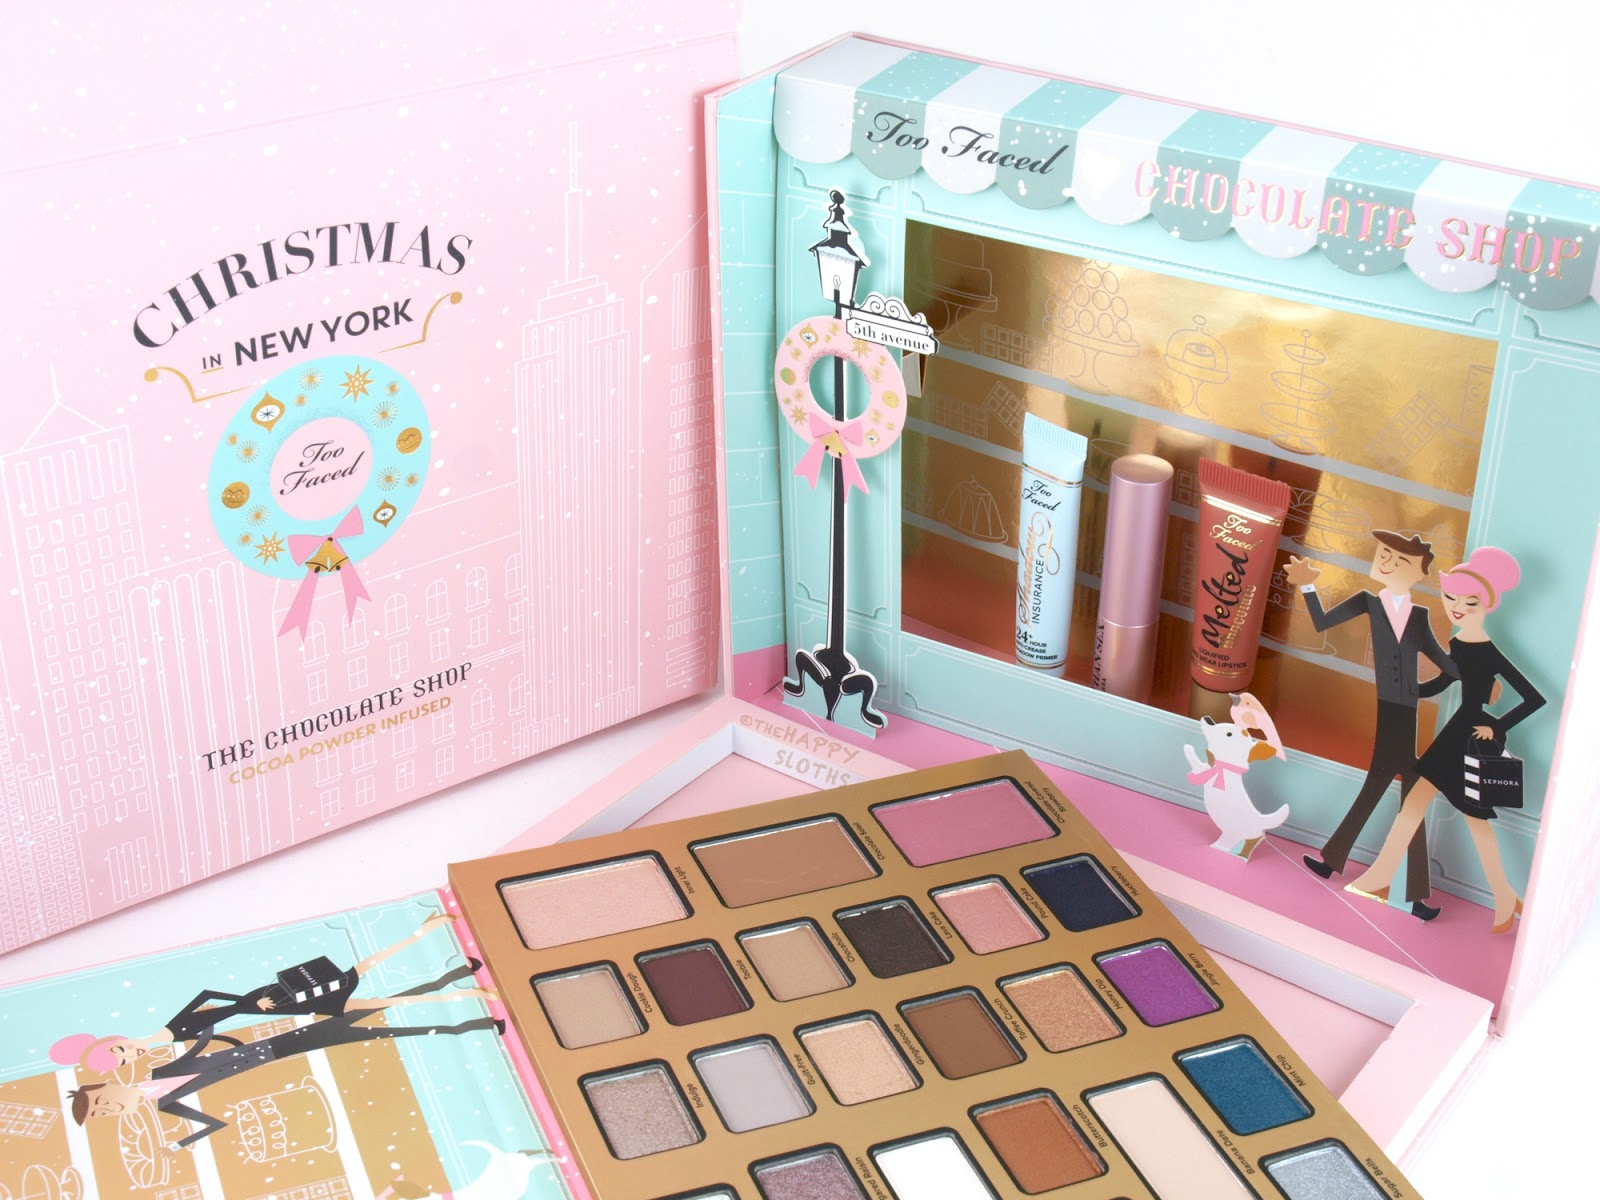 Too Faced Holiday 2016 The Chocolate Shop: Review and Swatches